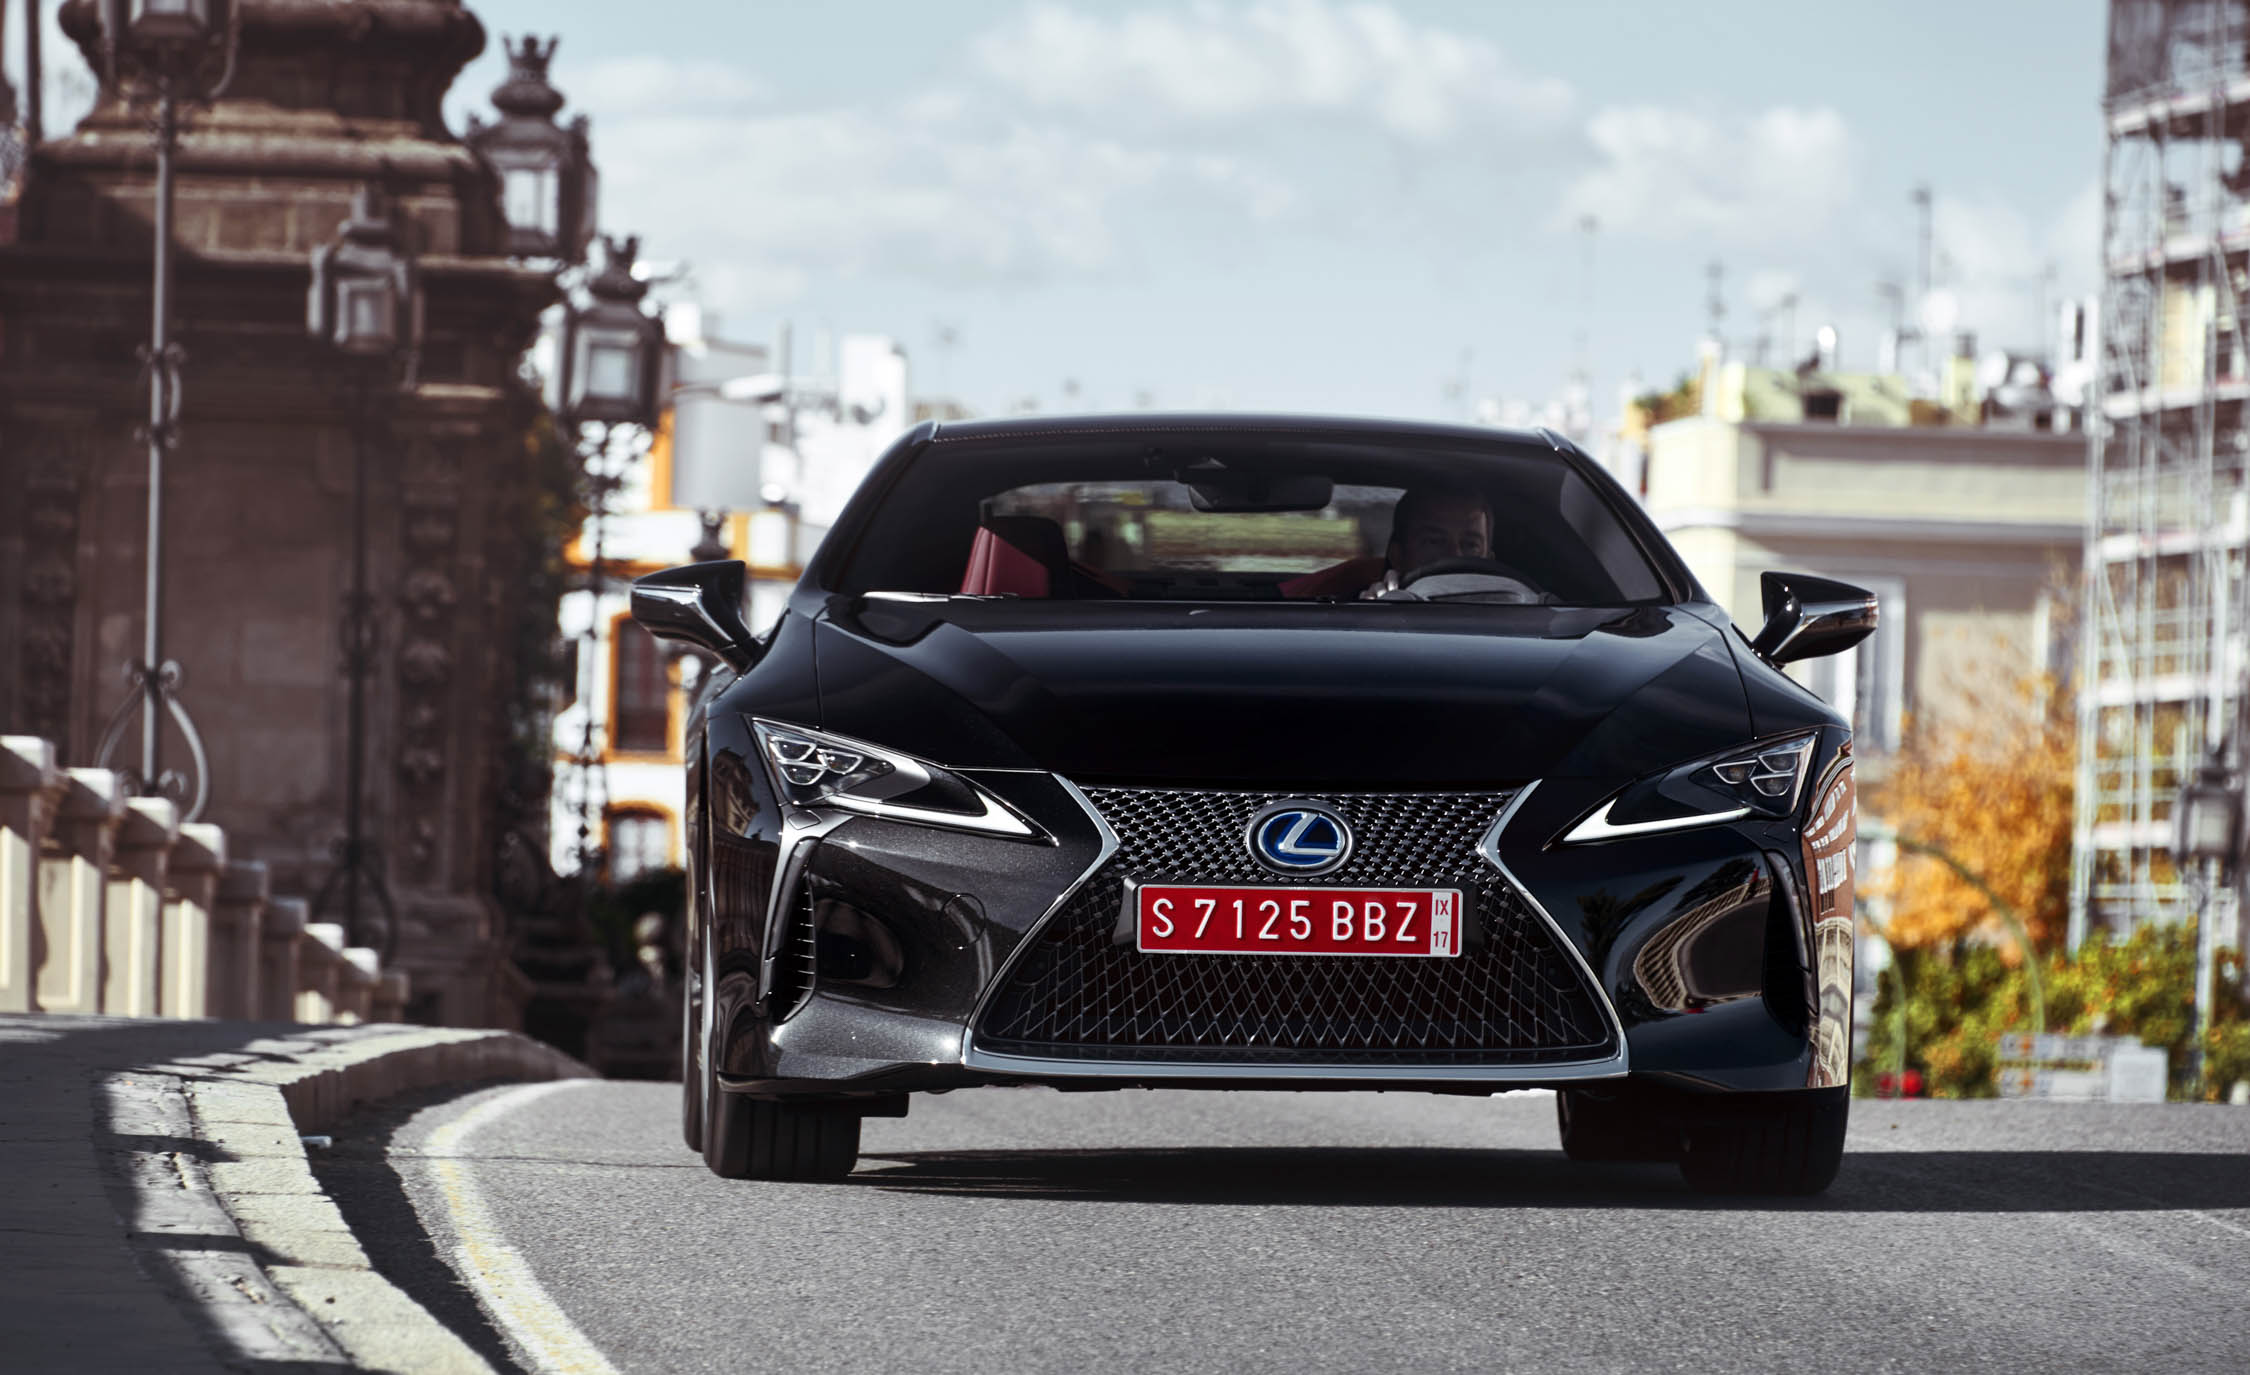 2018 Lexus Lc 500h Test Drive Front View (Photo 62 of 84)